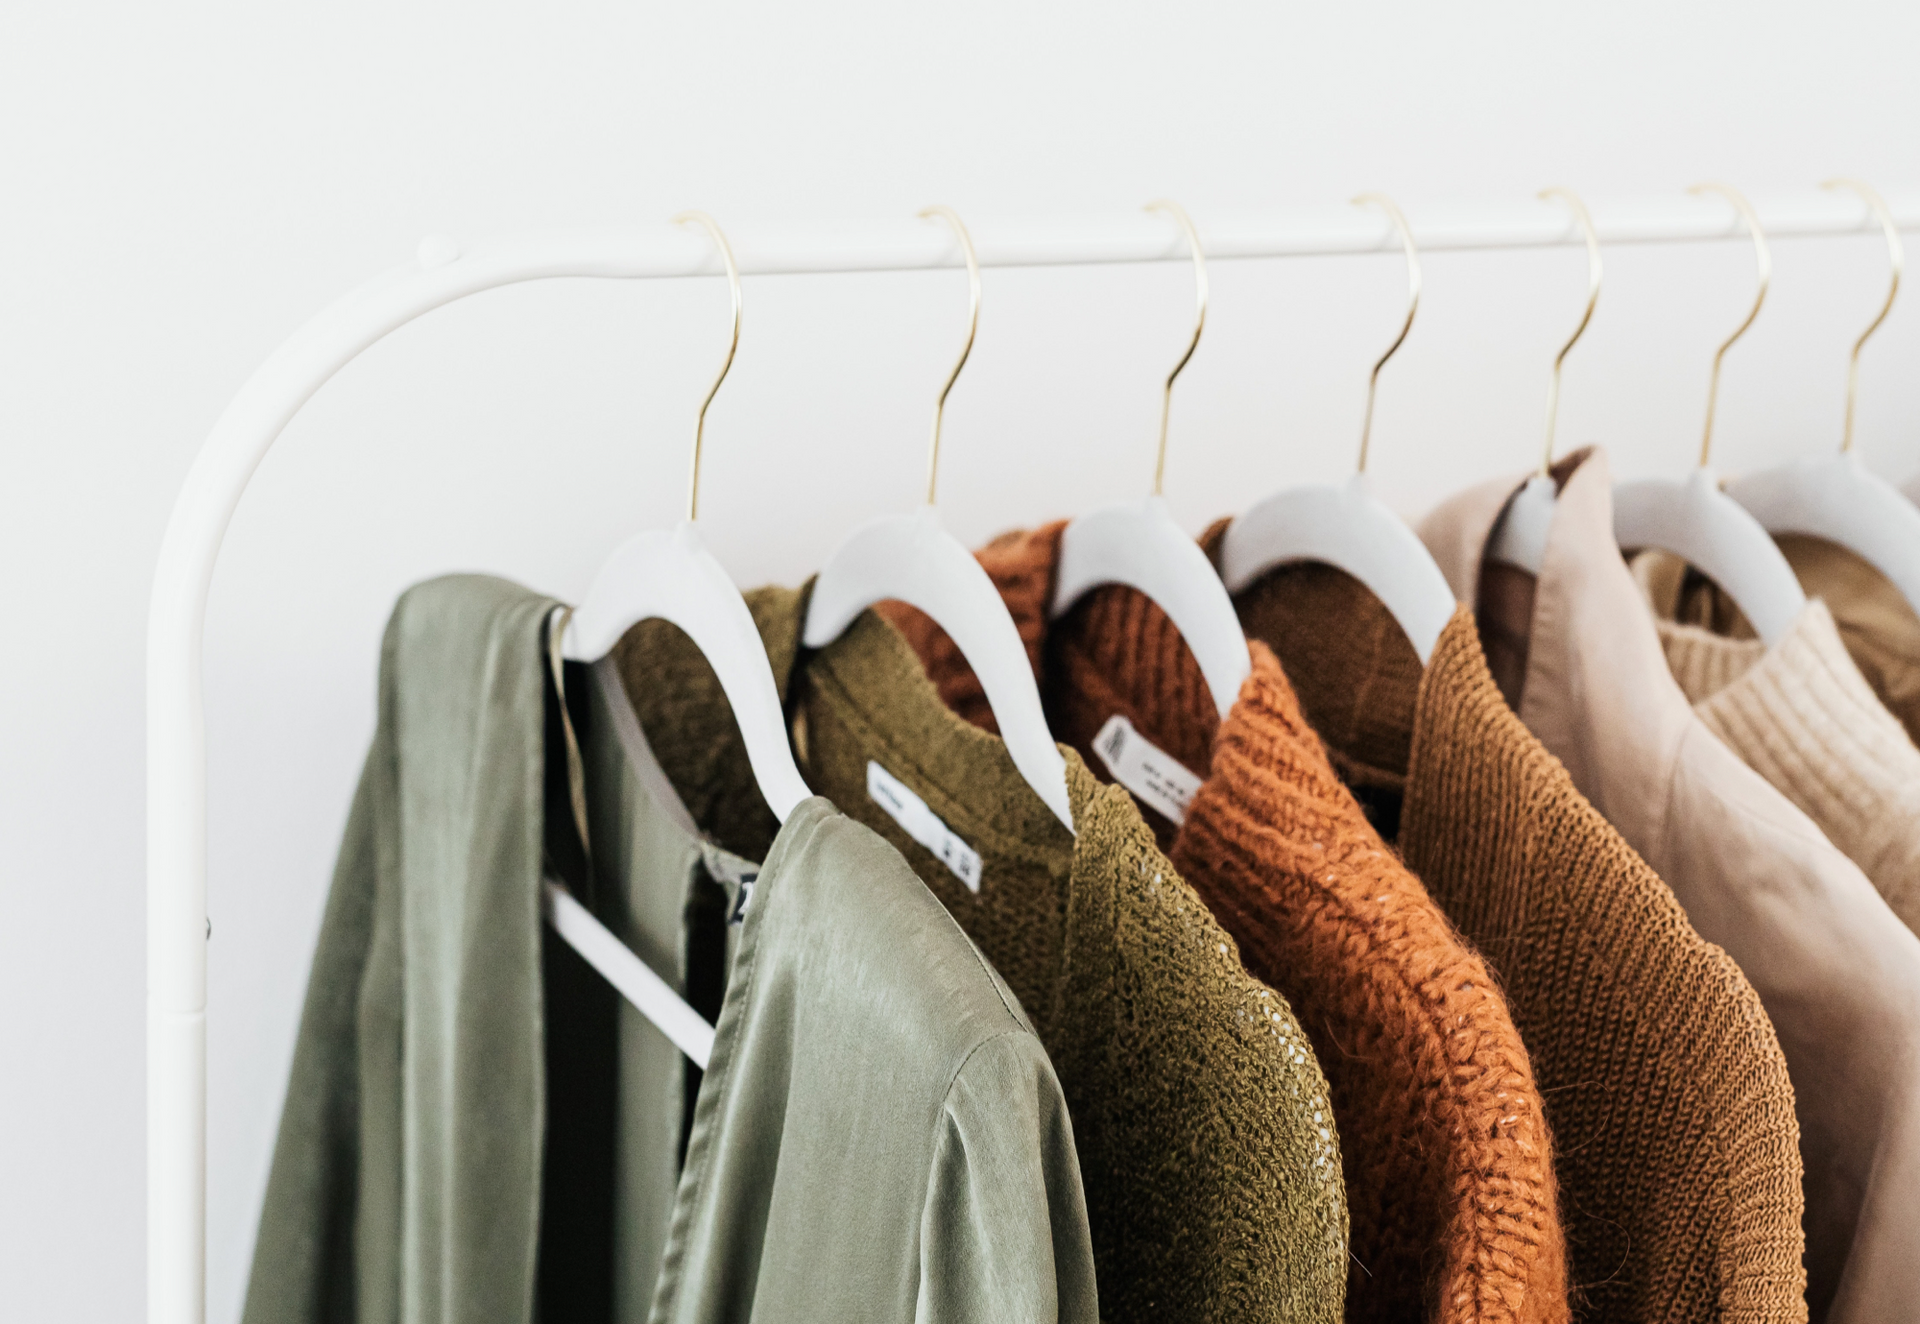 Thanks to GOTS, IVN and Co: recognising sustainable fashion at a single glance.